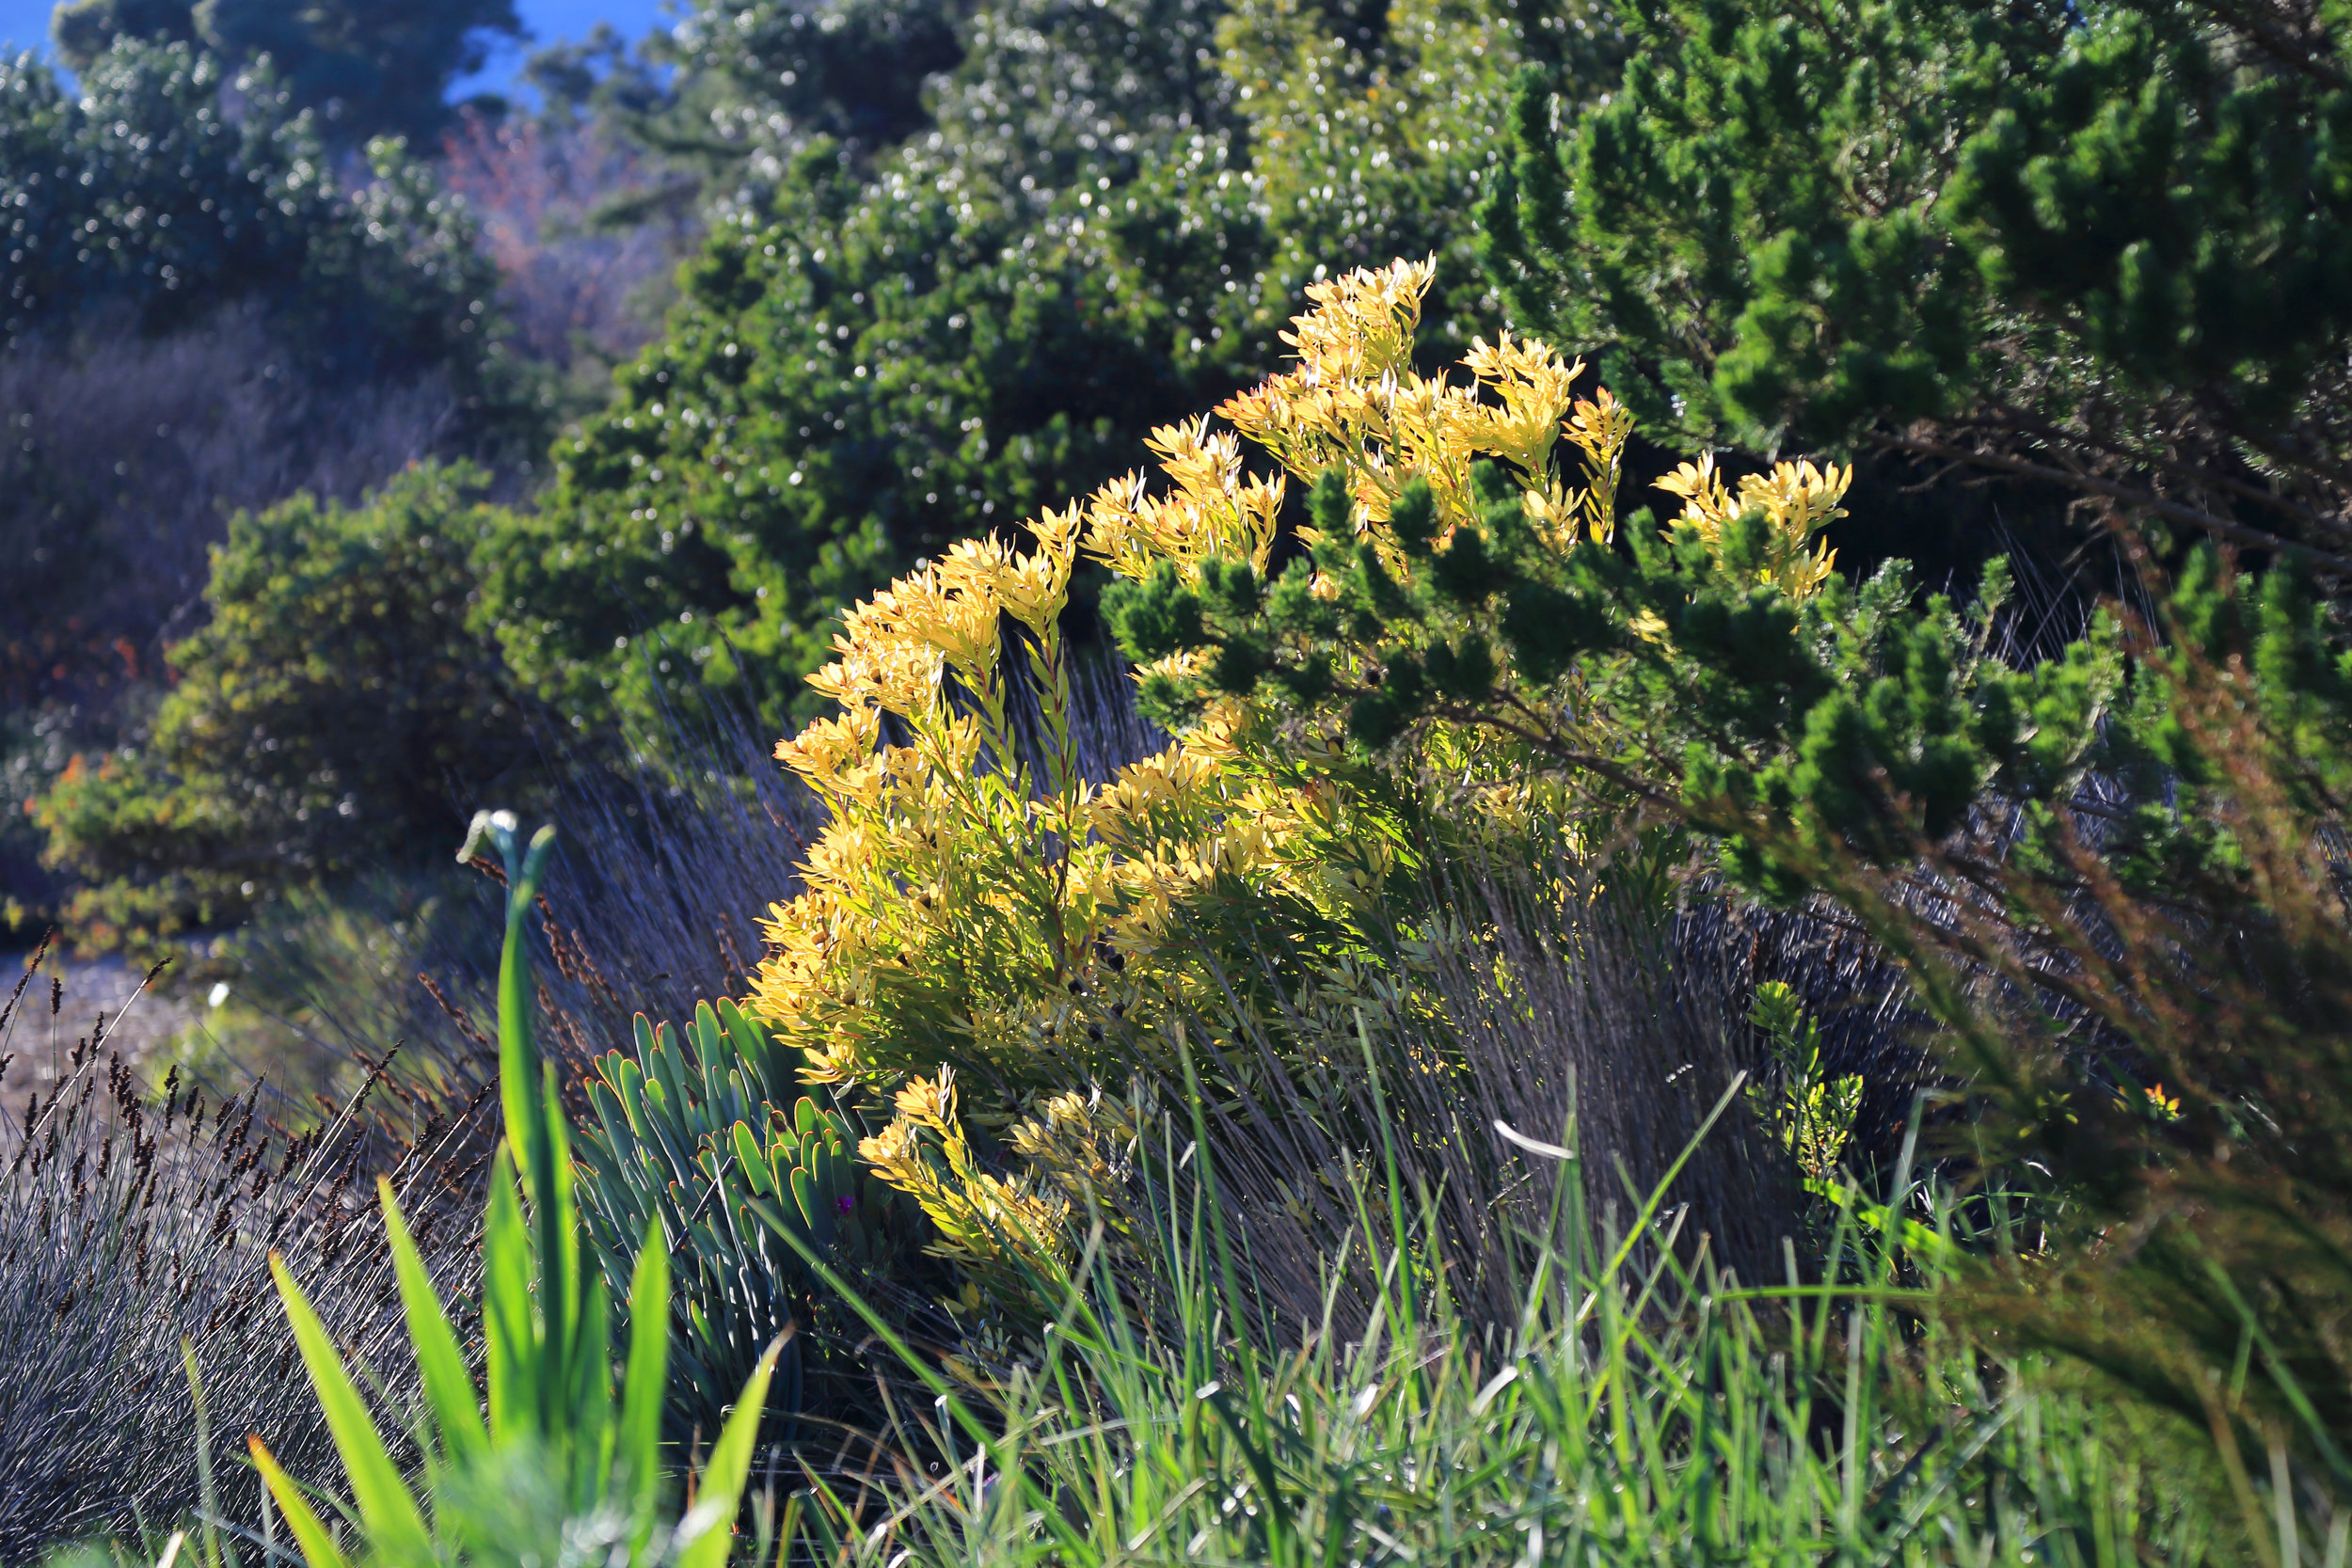 Glowing Leucadendron bracts, from South Africa